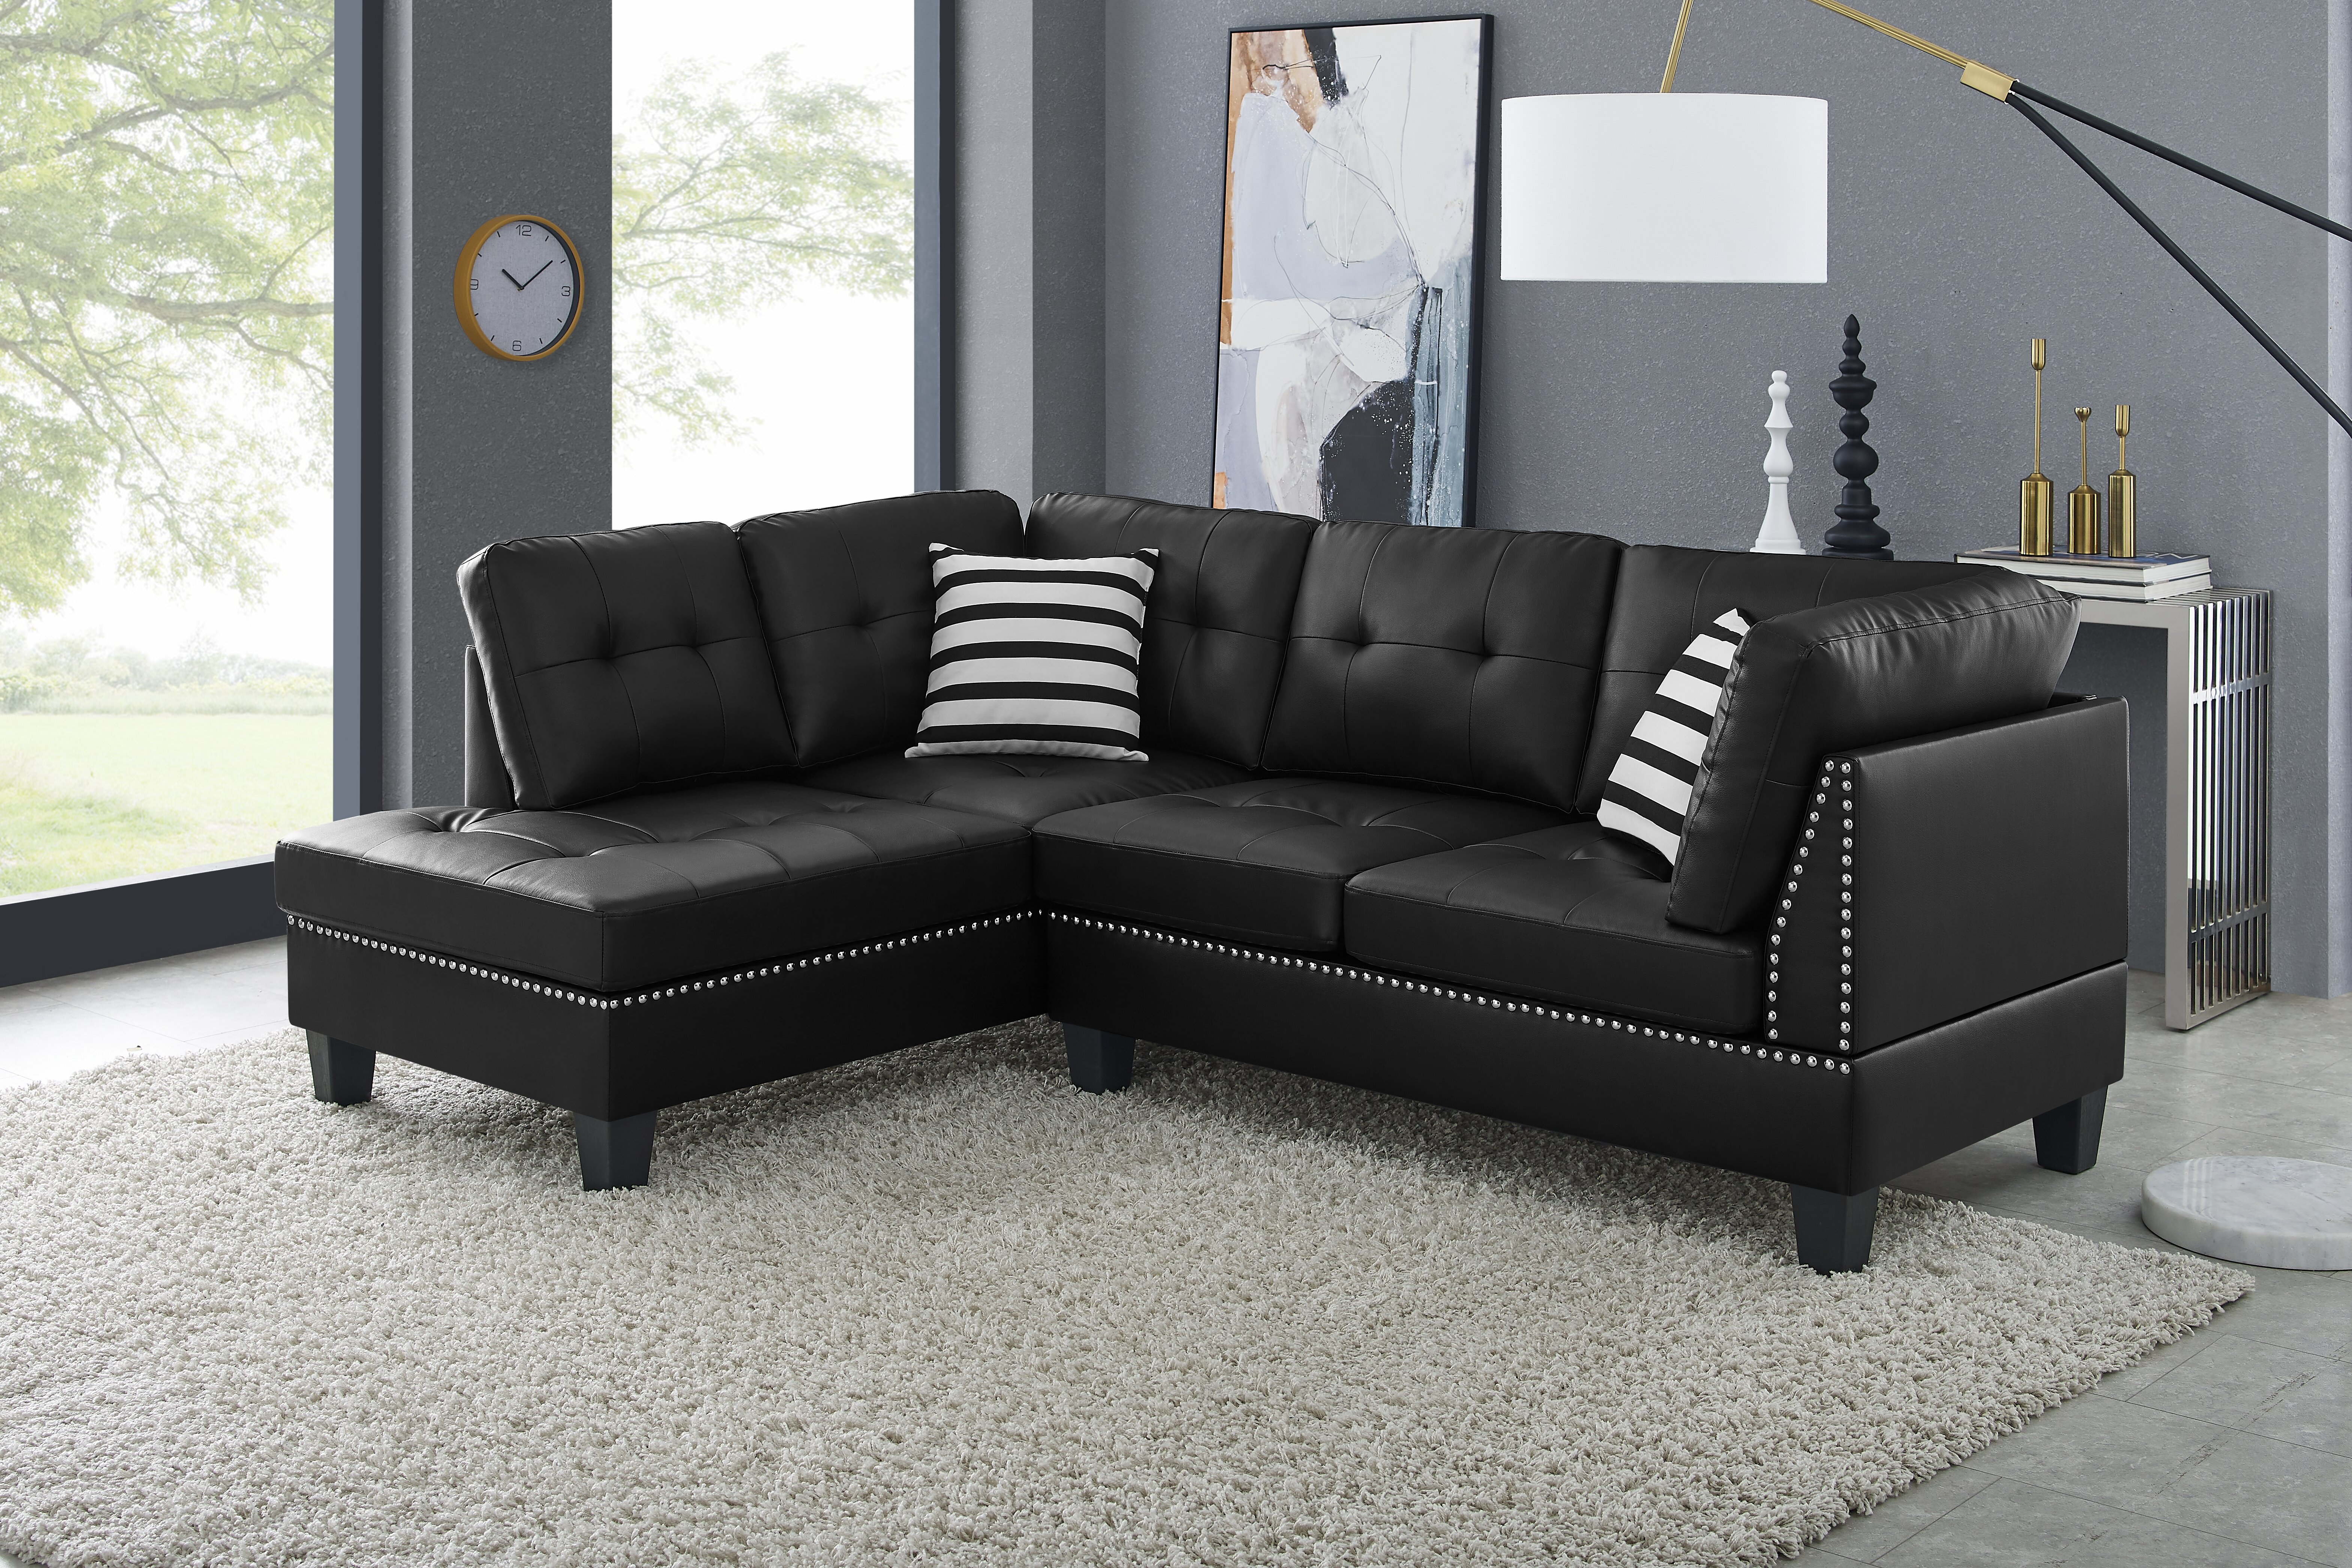 Black Faux Leather Sectionals You Ll Love In 2021 Wayfair